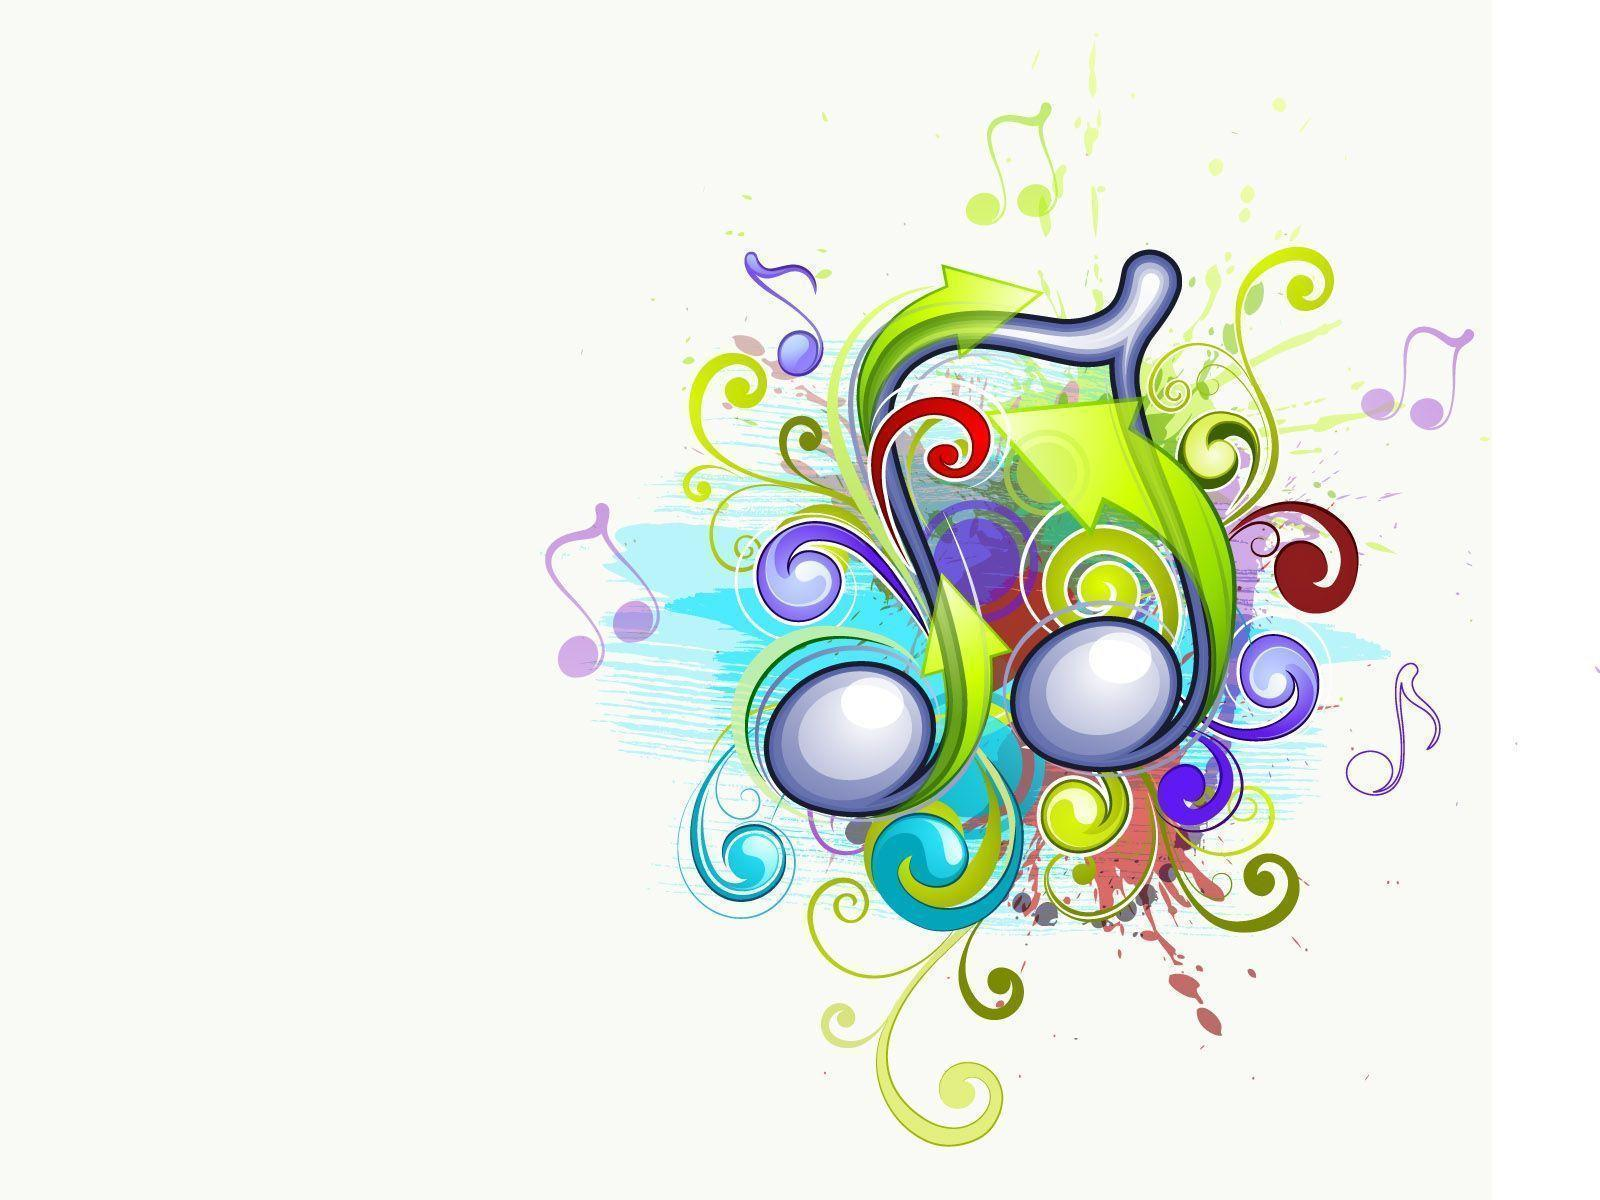 Abstract Musical Presentation Free PPT Backgrounds